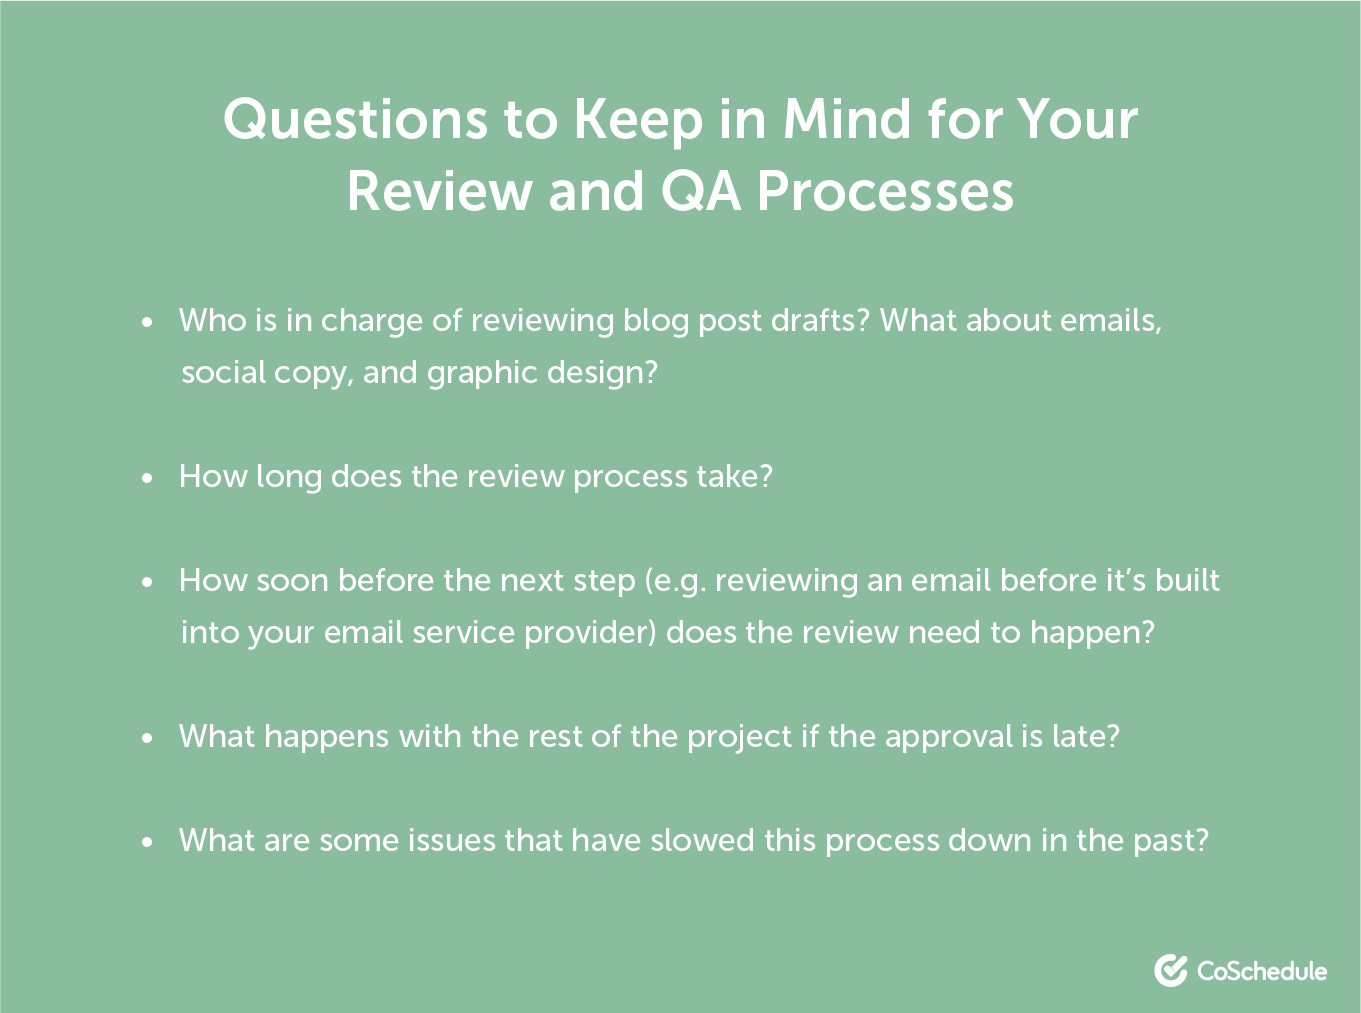 Questions to consider for review and QA processes